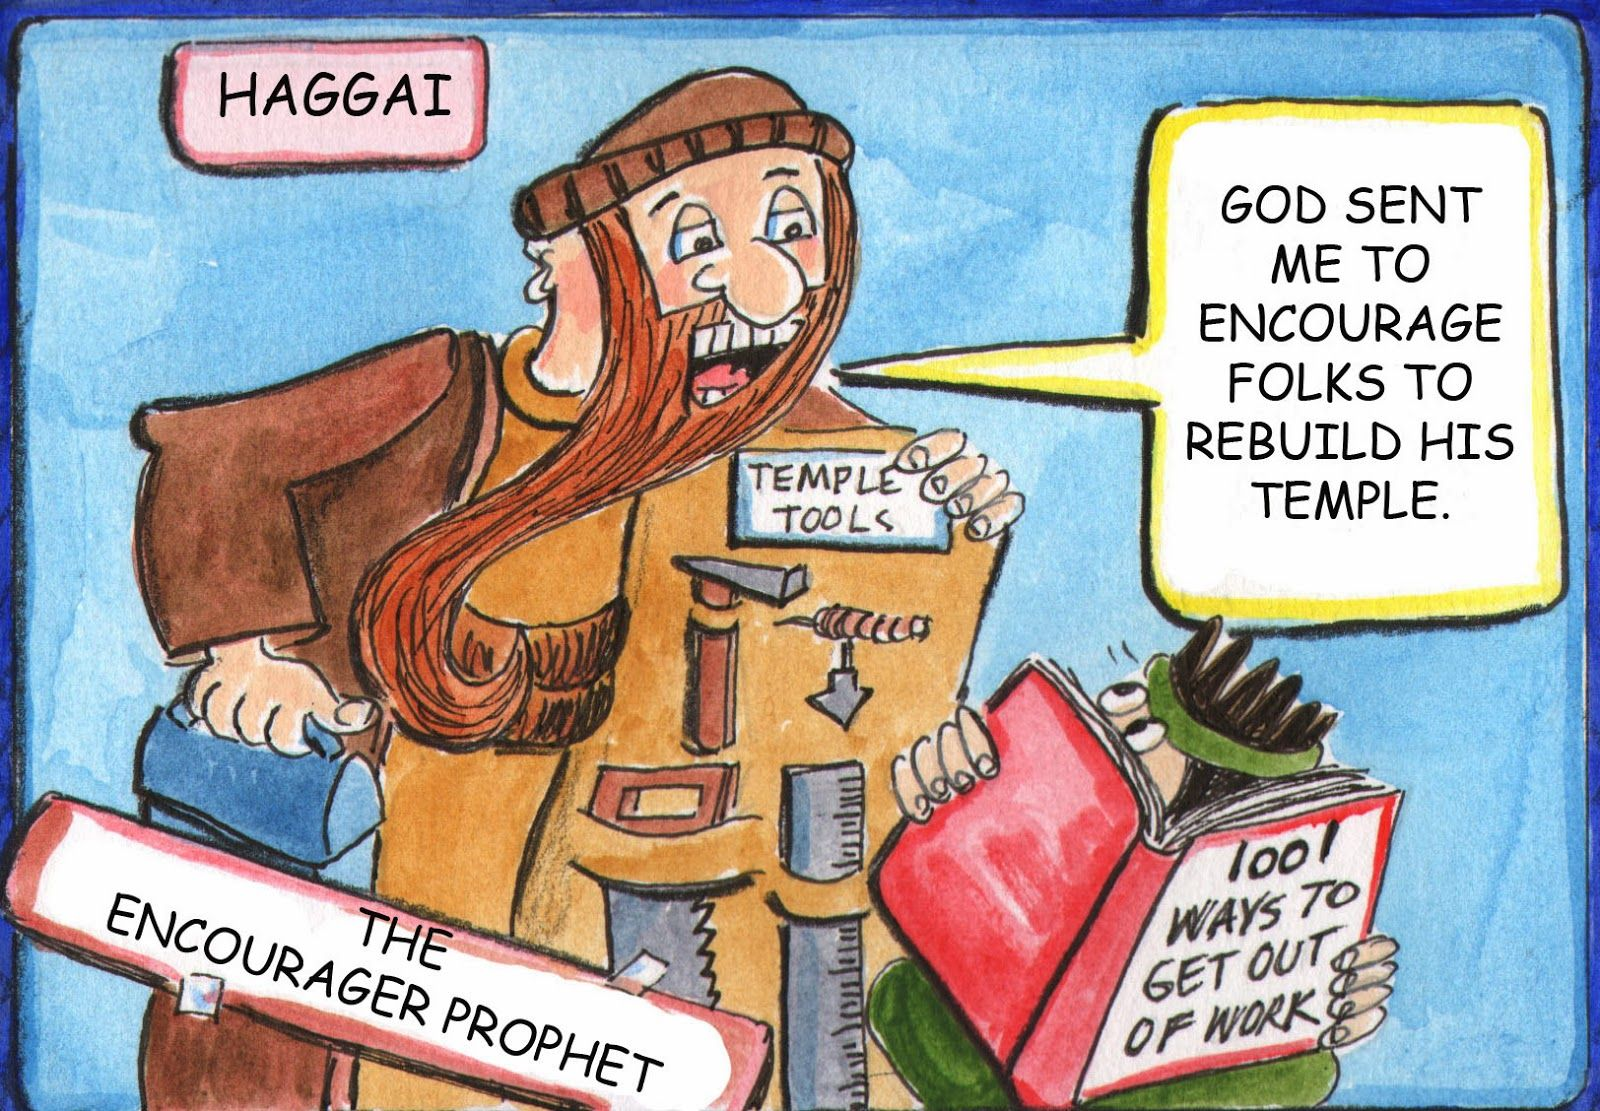 Haggai encouraged gods people when they had returned from